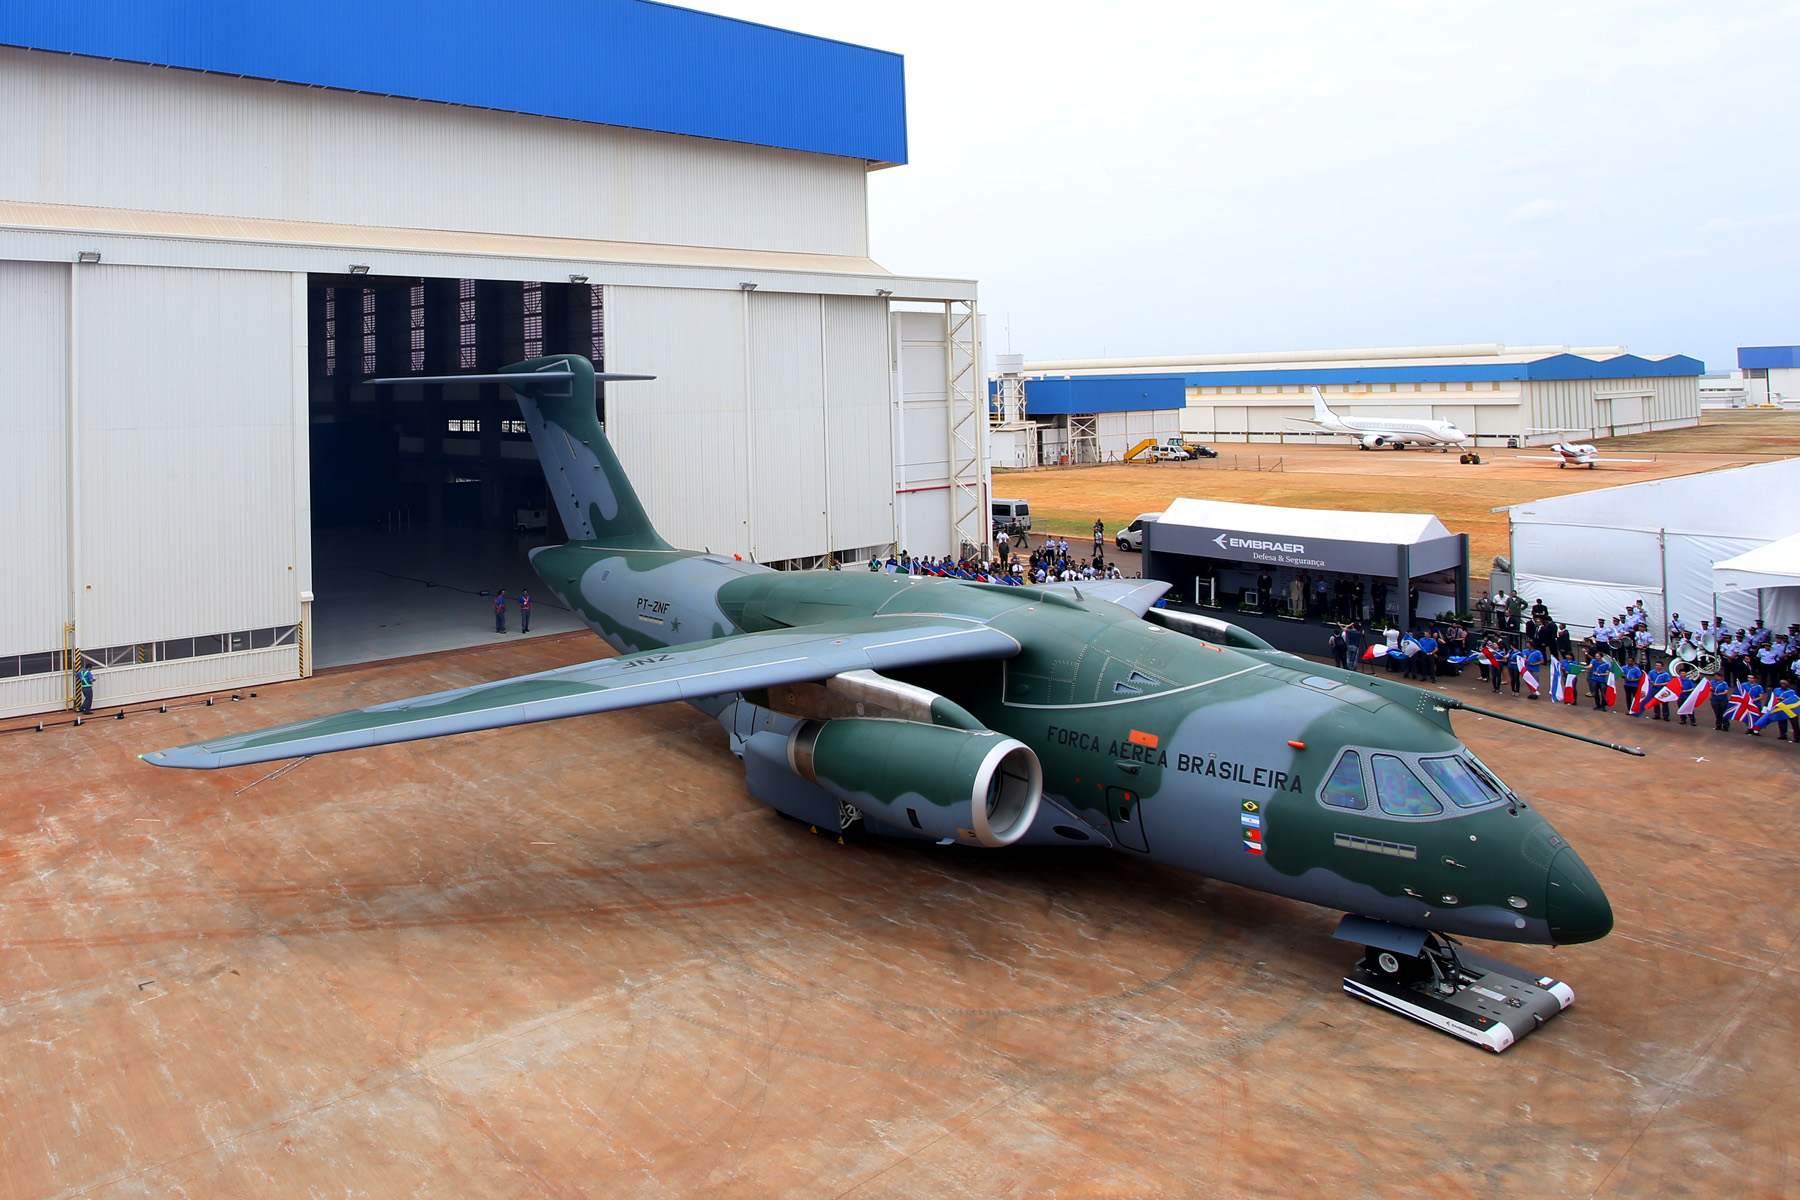 KC-390 roll-out 3